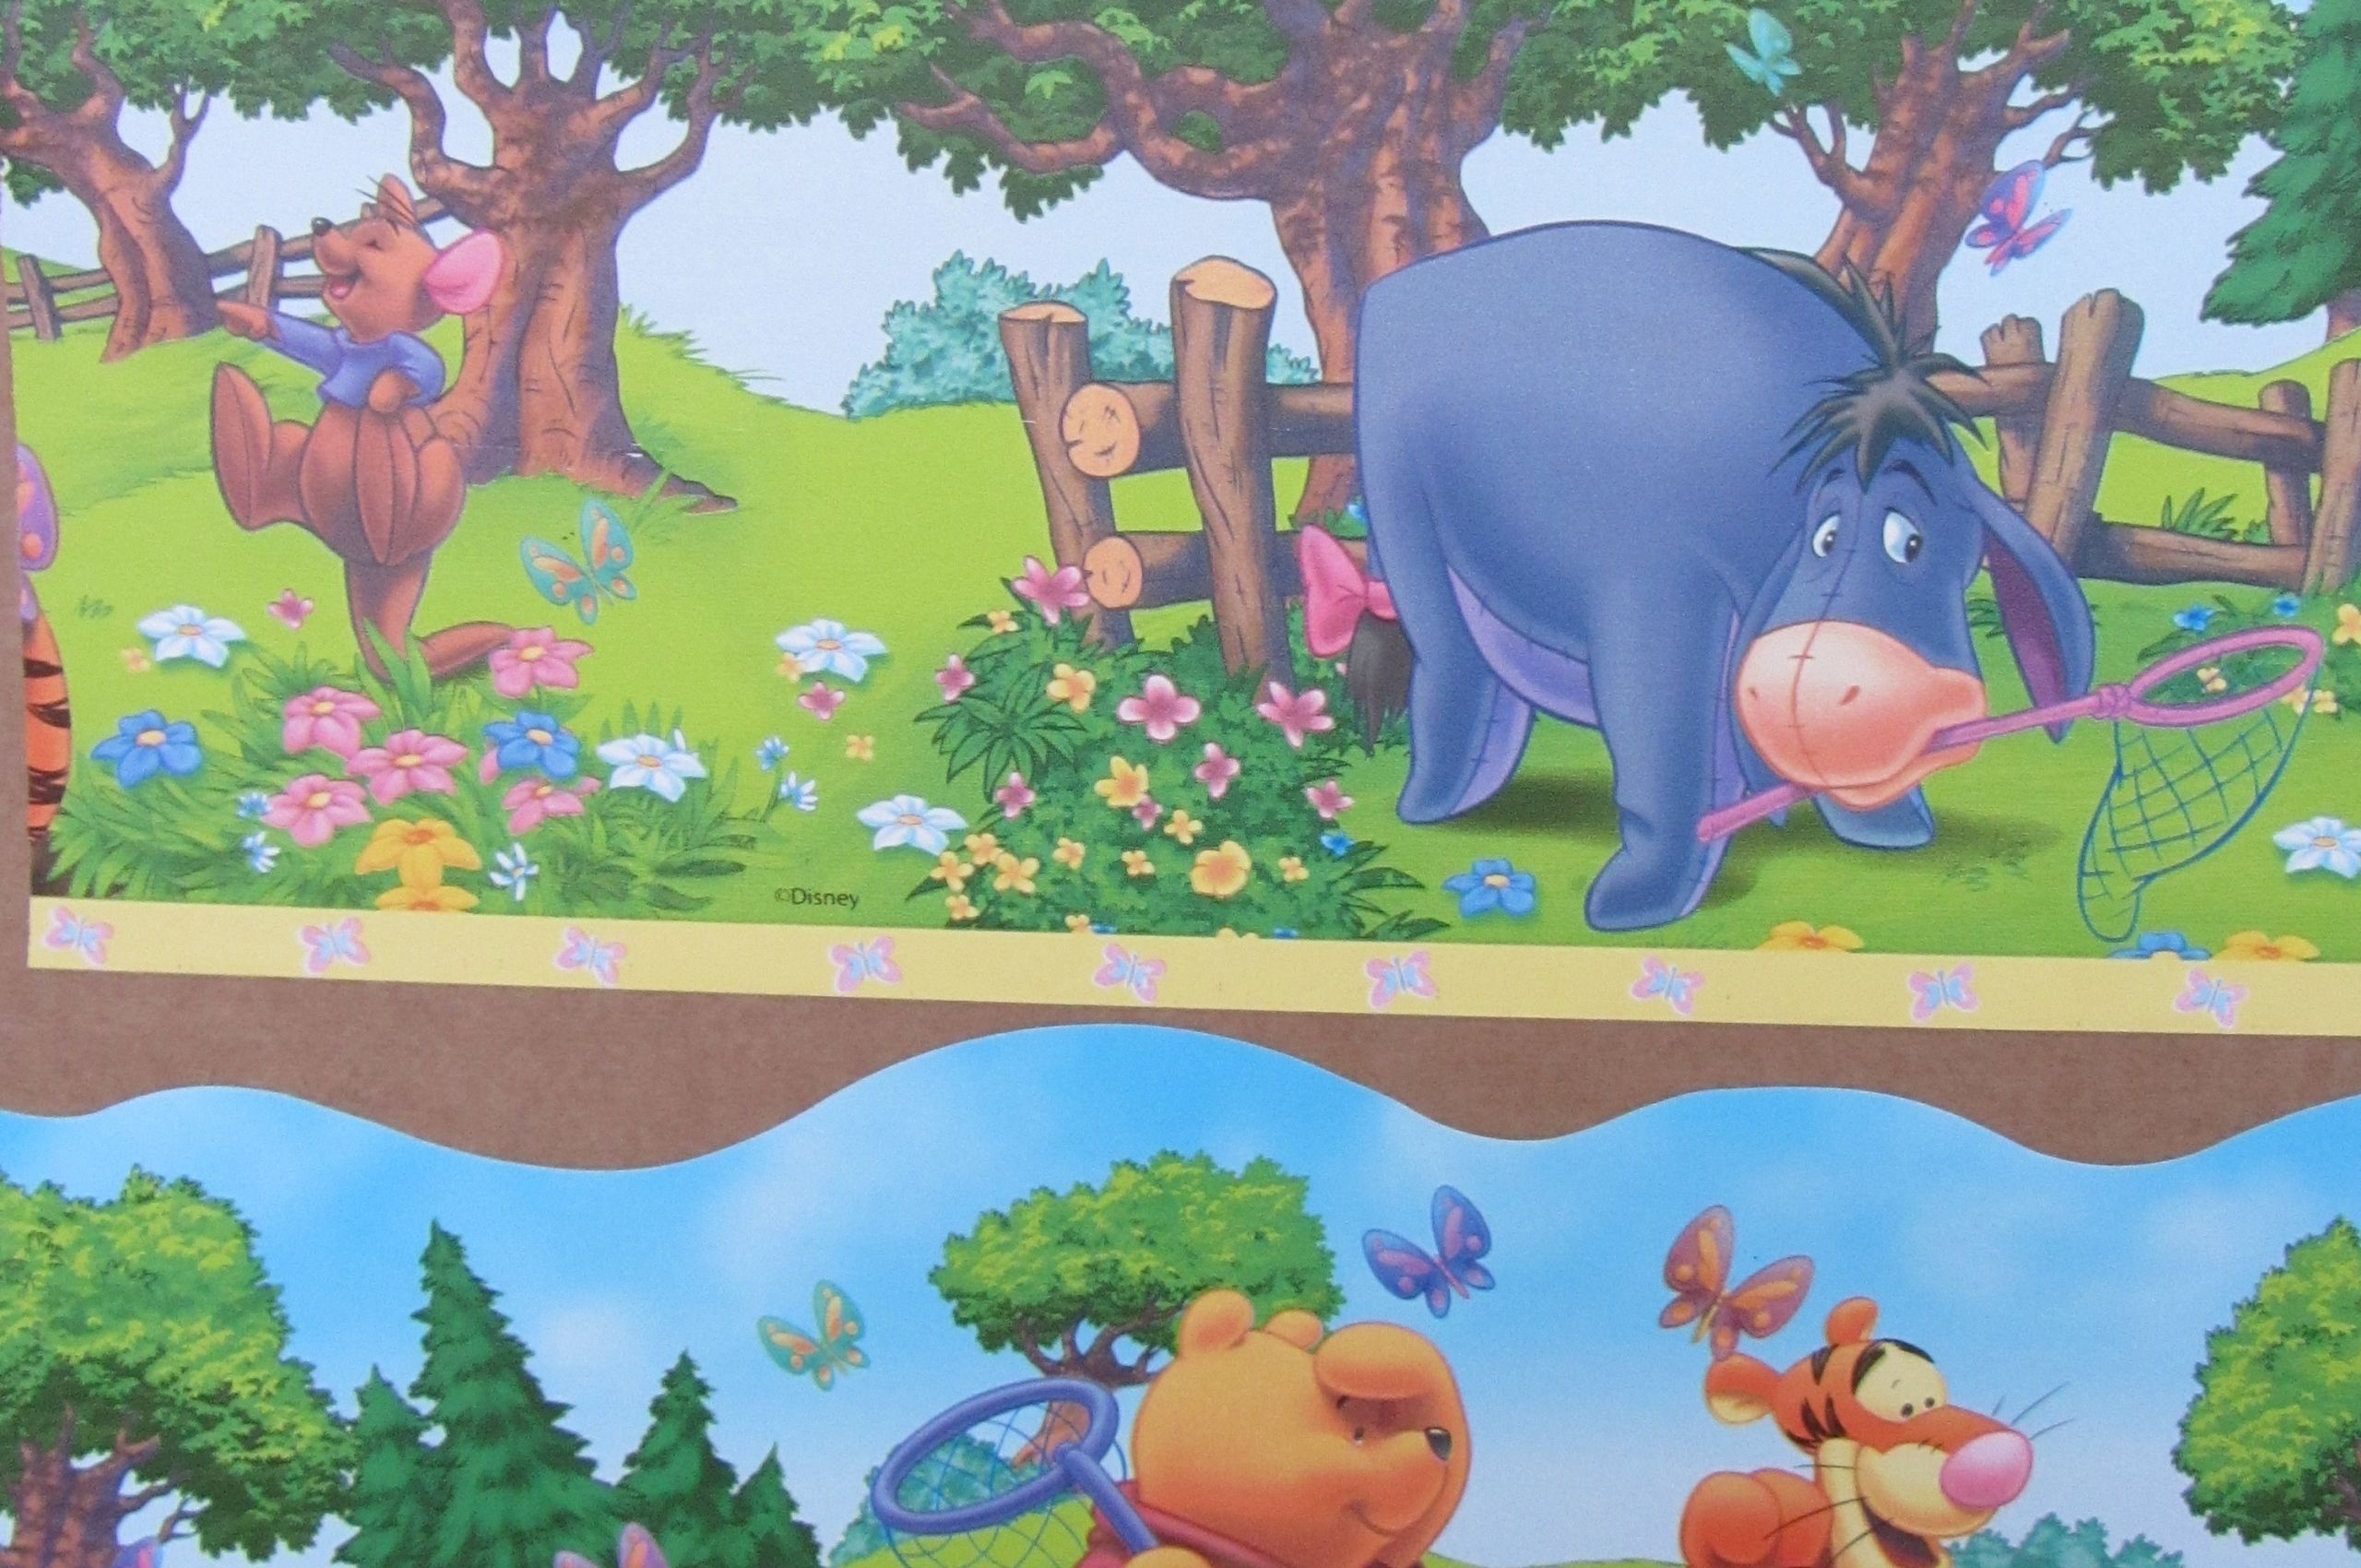 Free Download Winnie The Pooh Shaped Wallpaper Border Self Inside